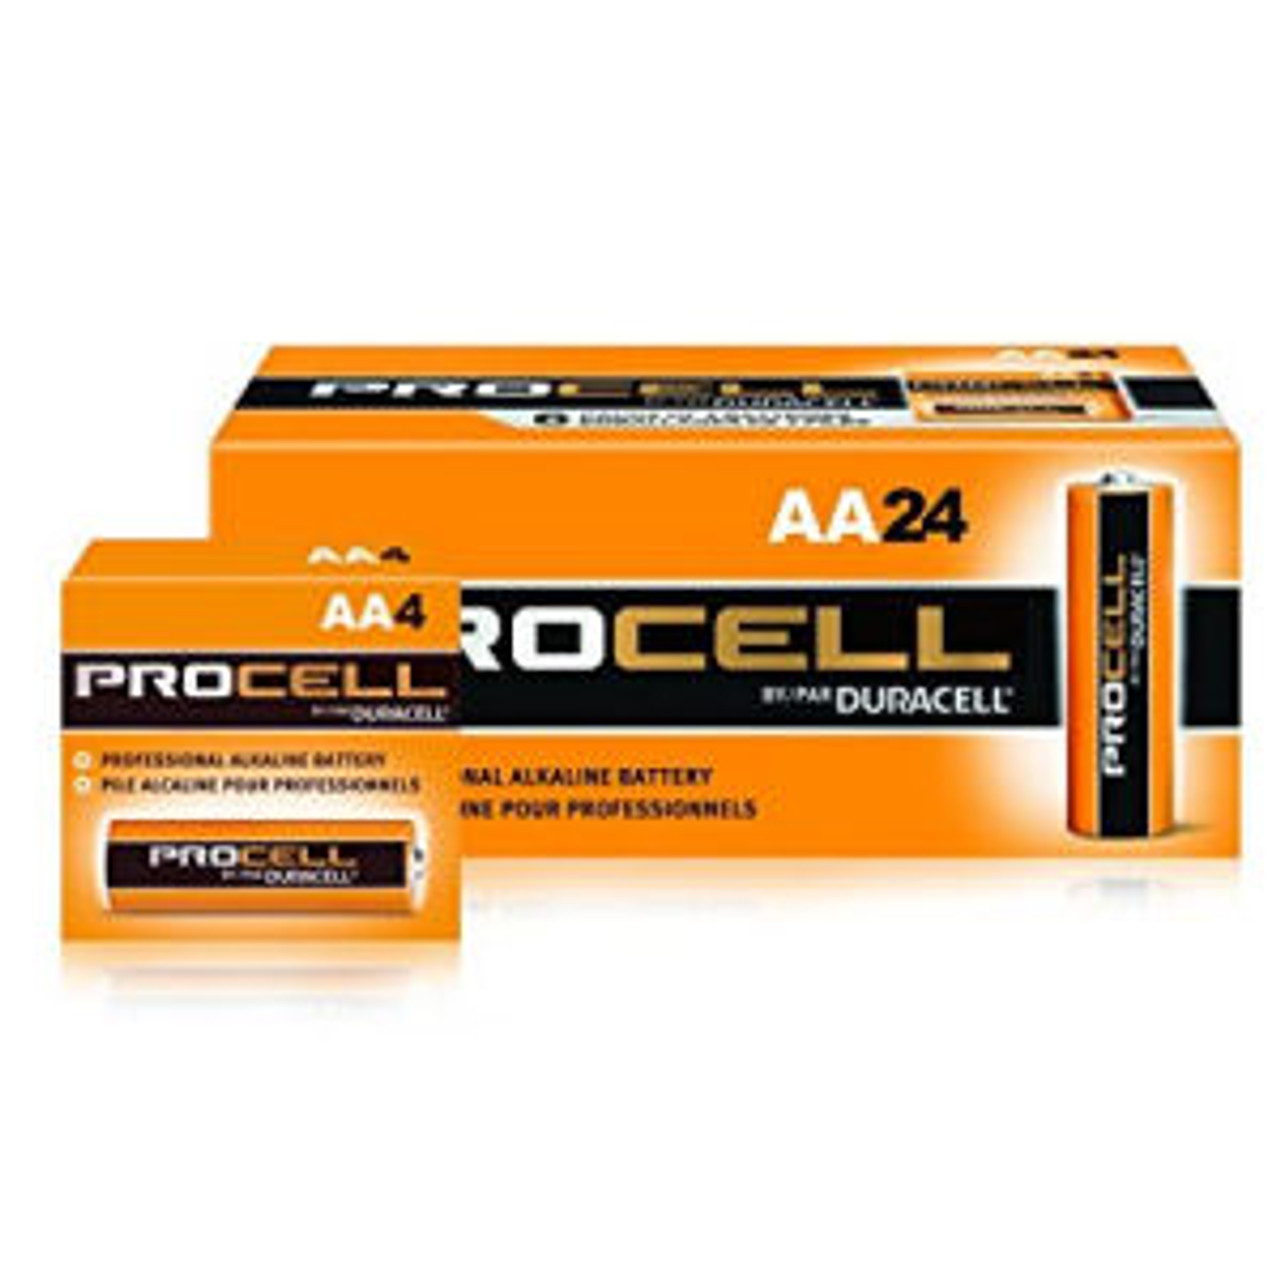 Duracell Procell AA Alkaline Cells - Box of 24